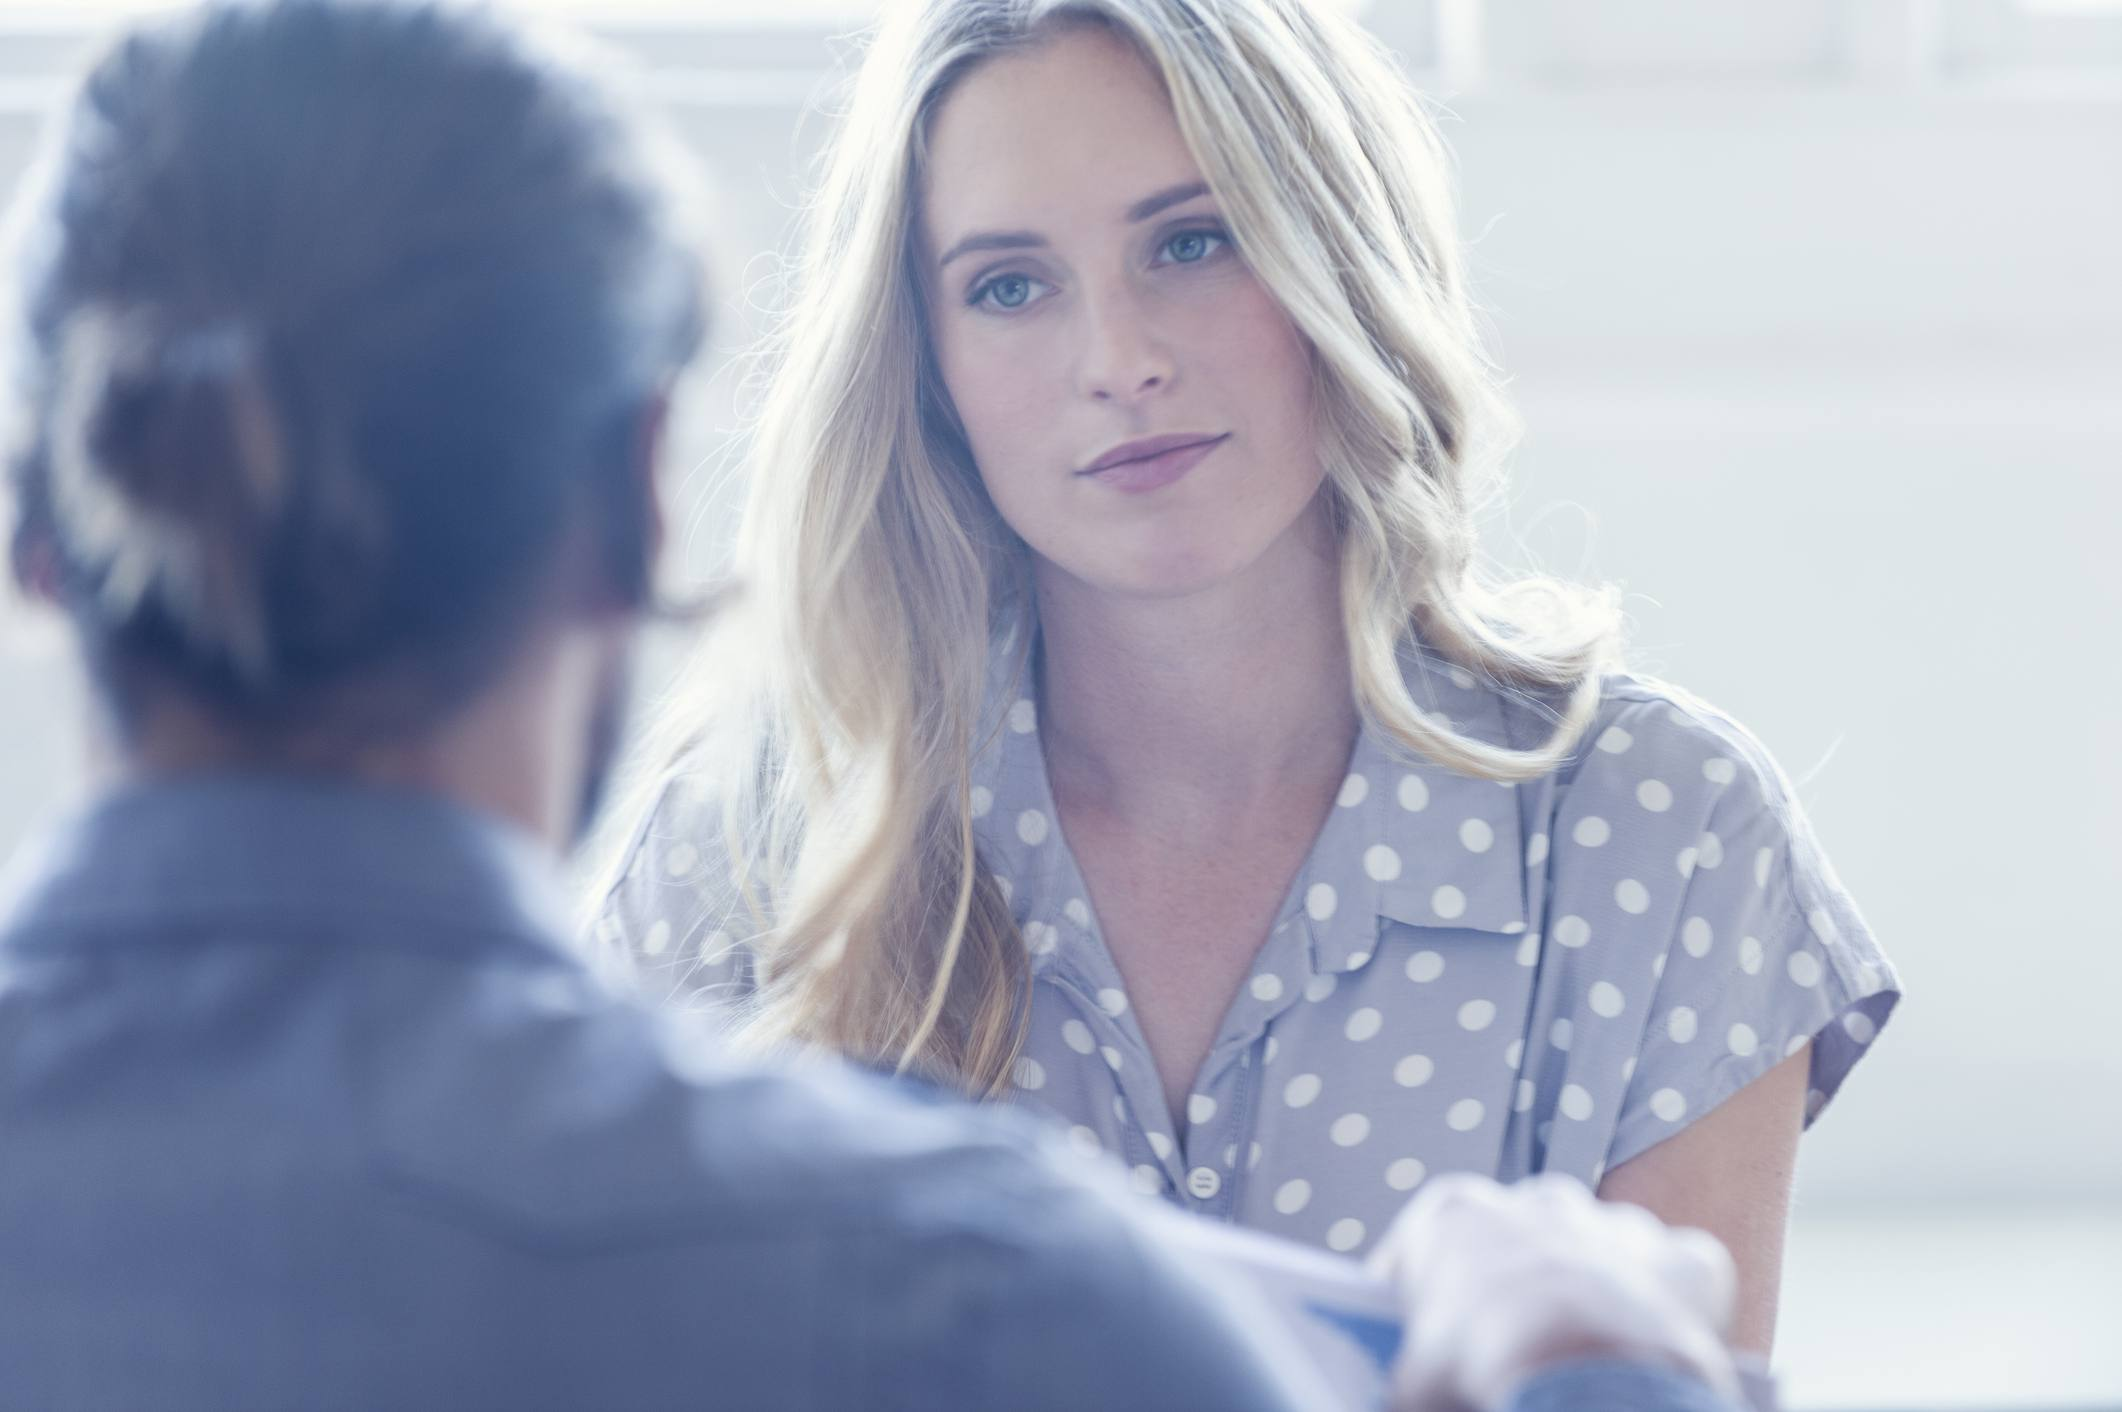 8 Steps From Beginning to End of a Contested Divorce